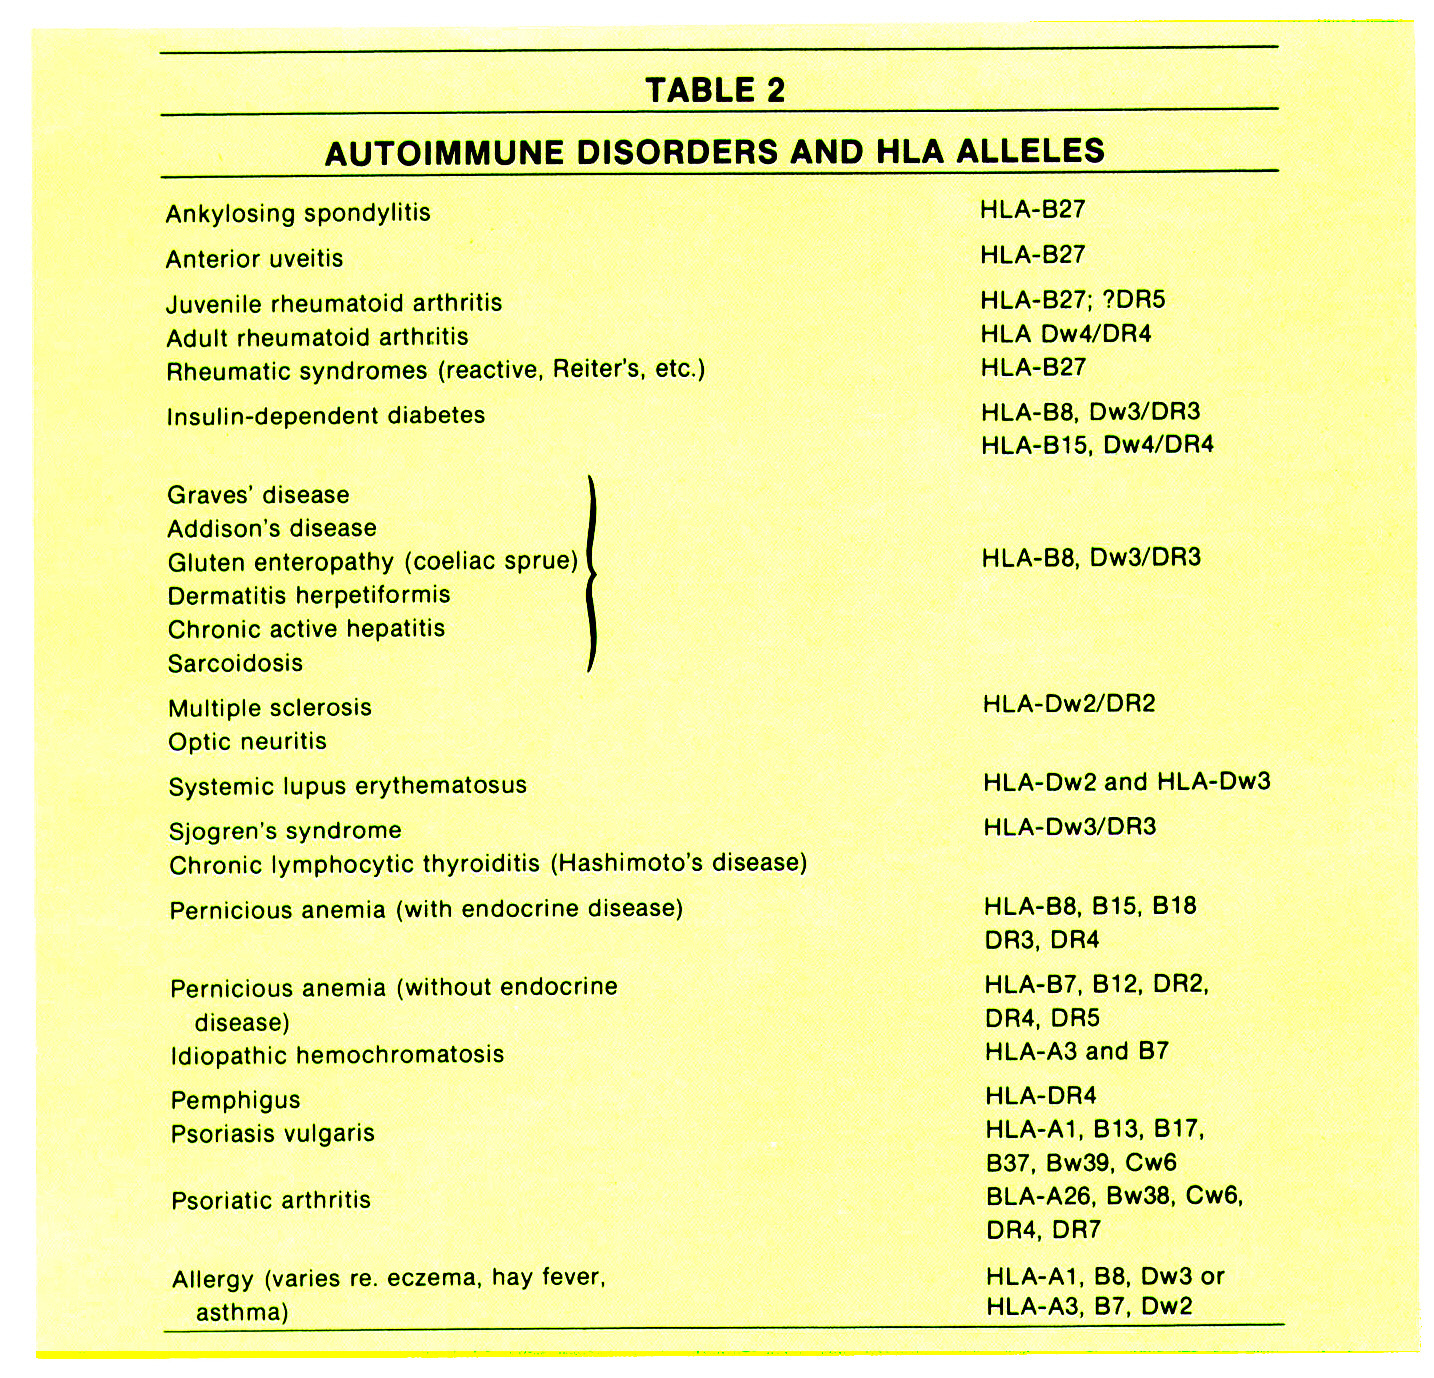 TABLE 2AUTOIMMUNE DISORDERS AND HLA ALLELES